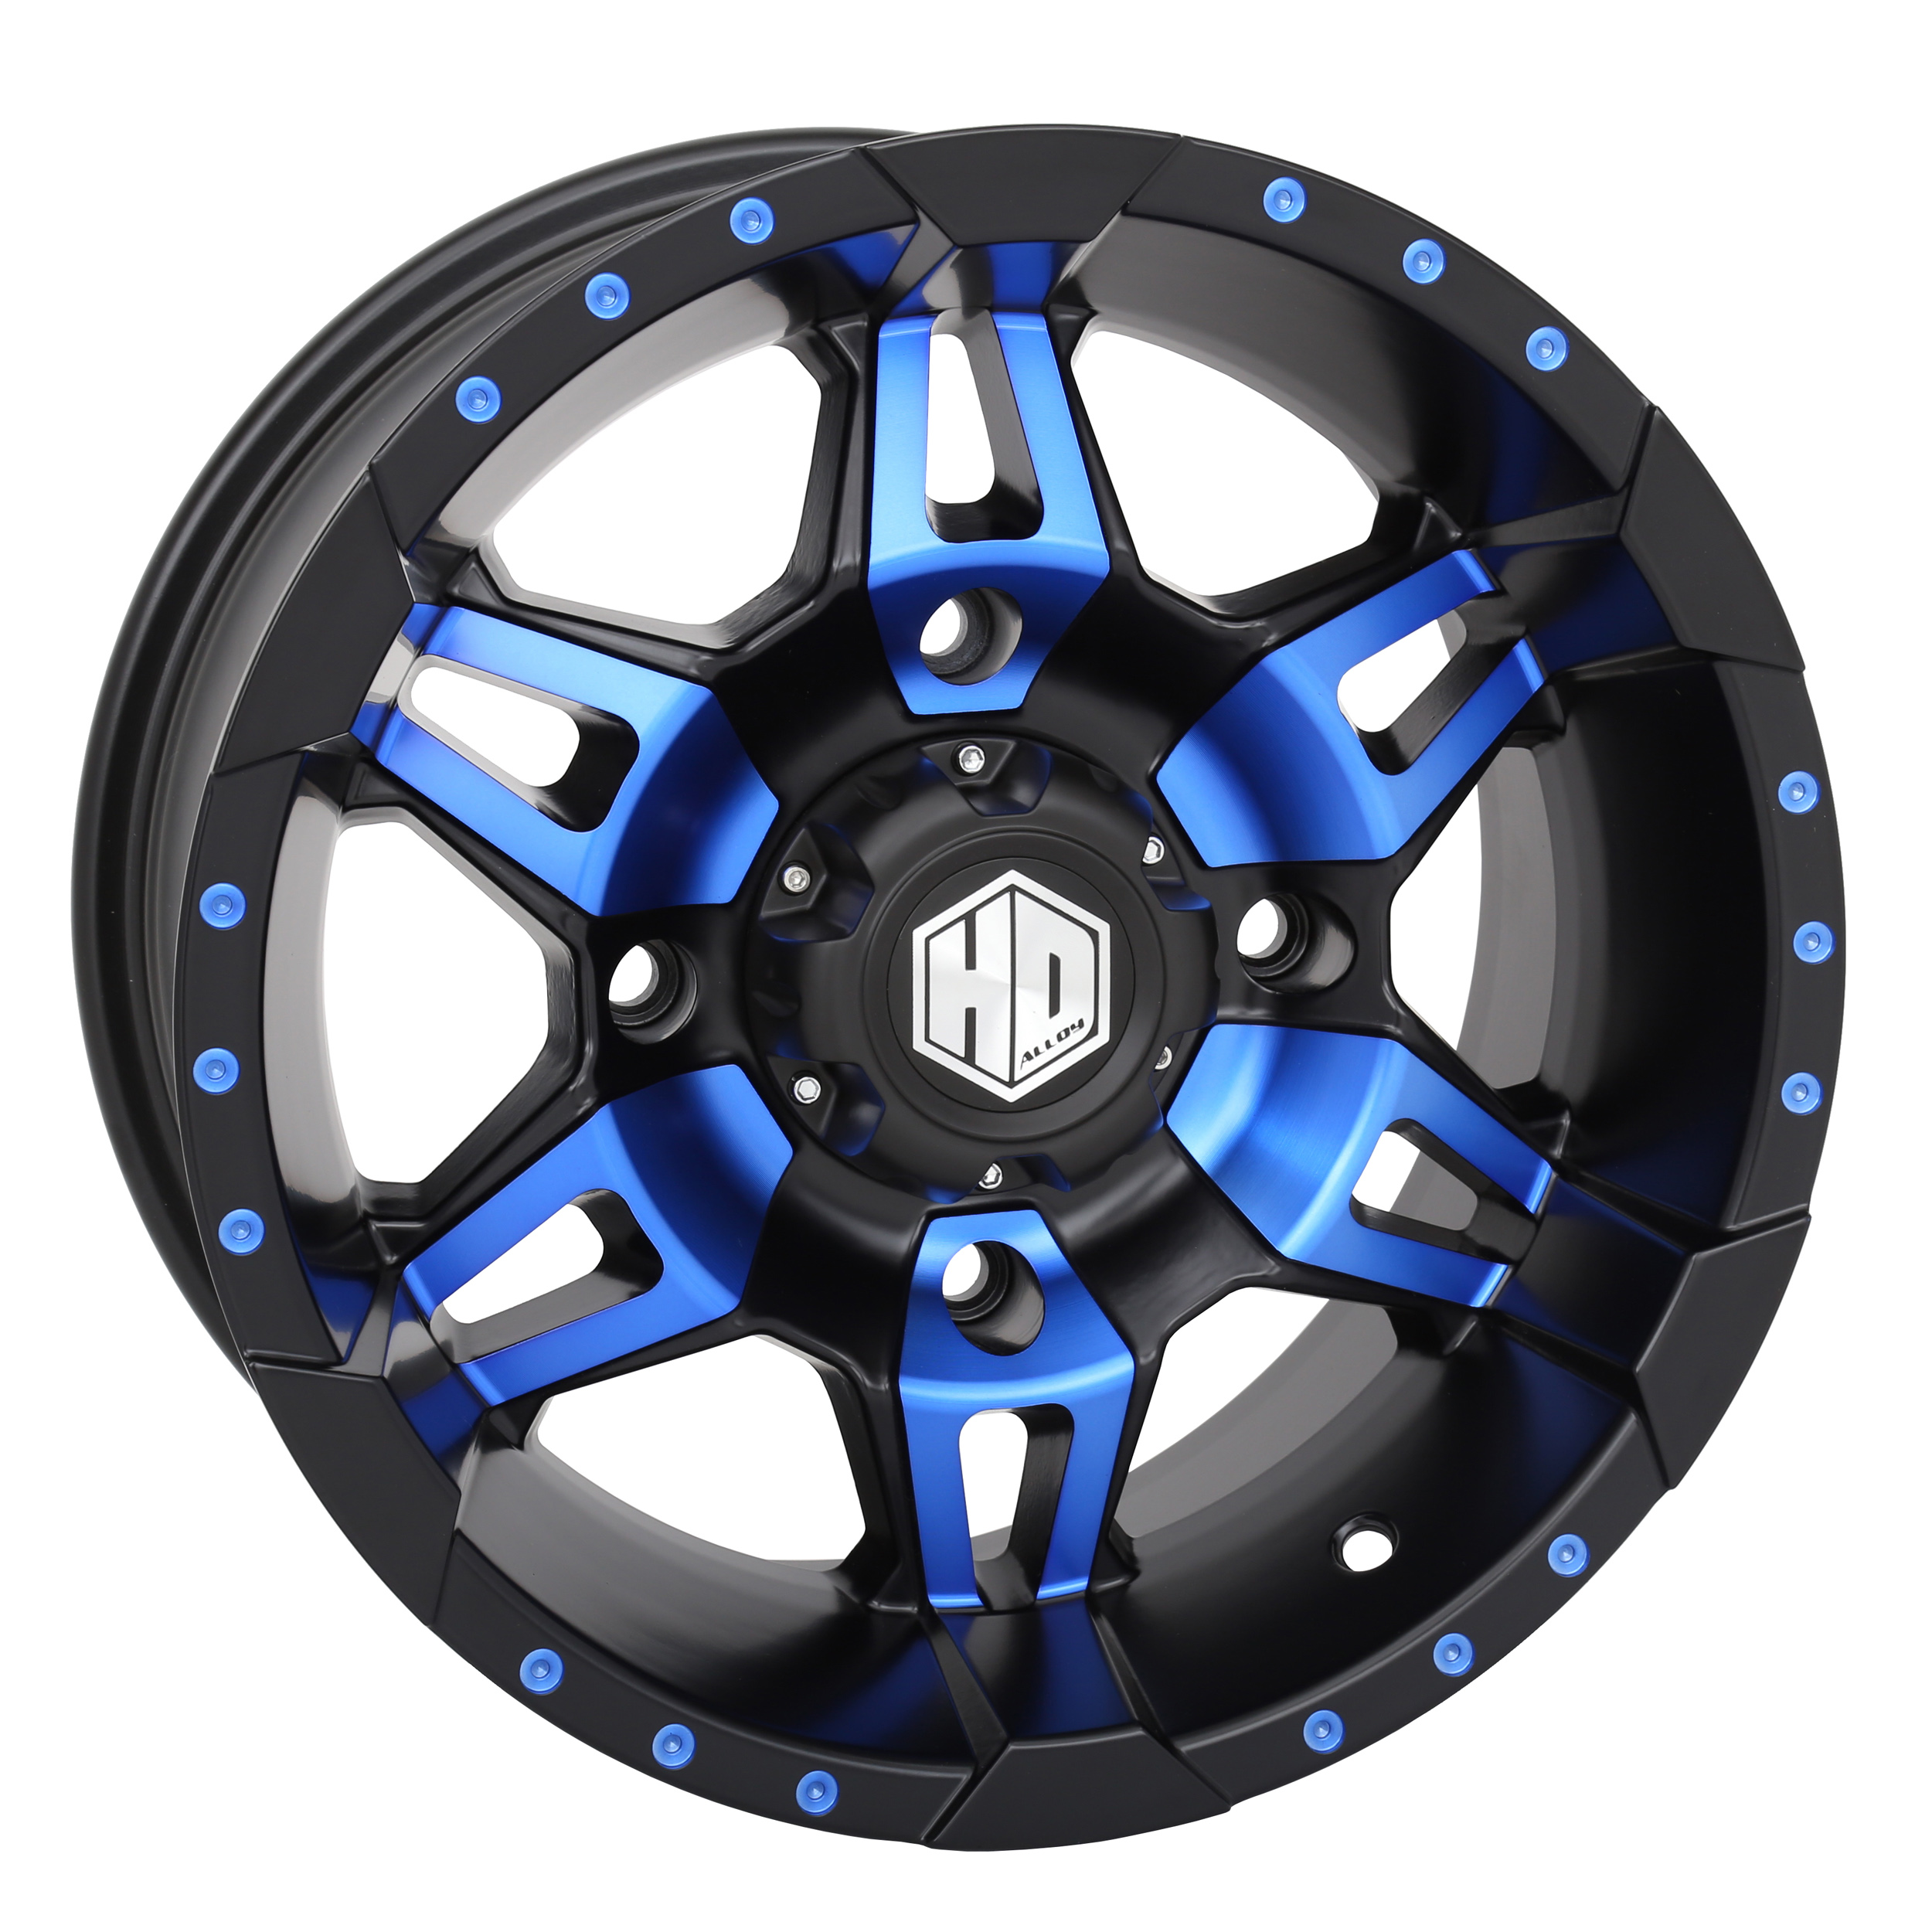 The New Sti Hd8 Wheel Line Is Here Utv Scene Magazine